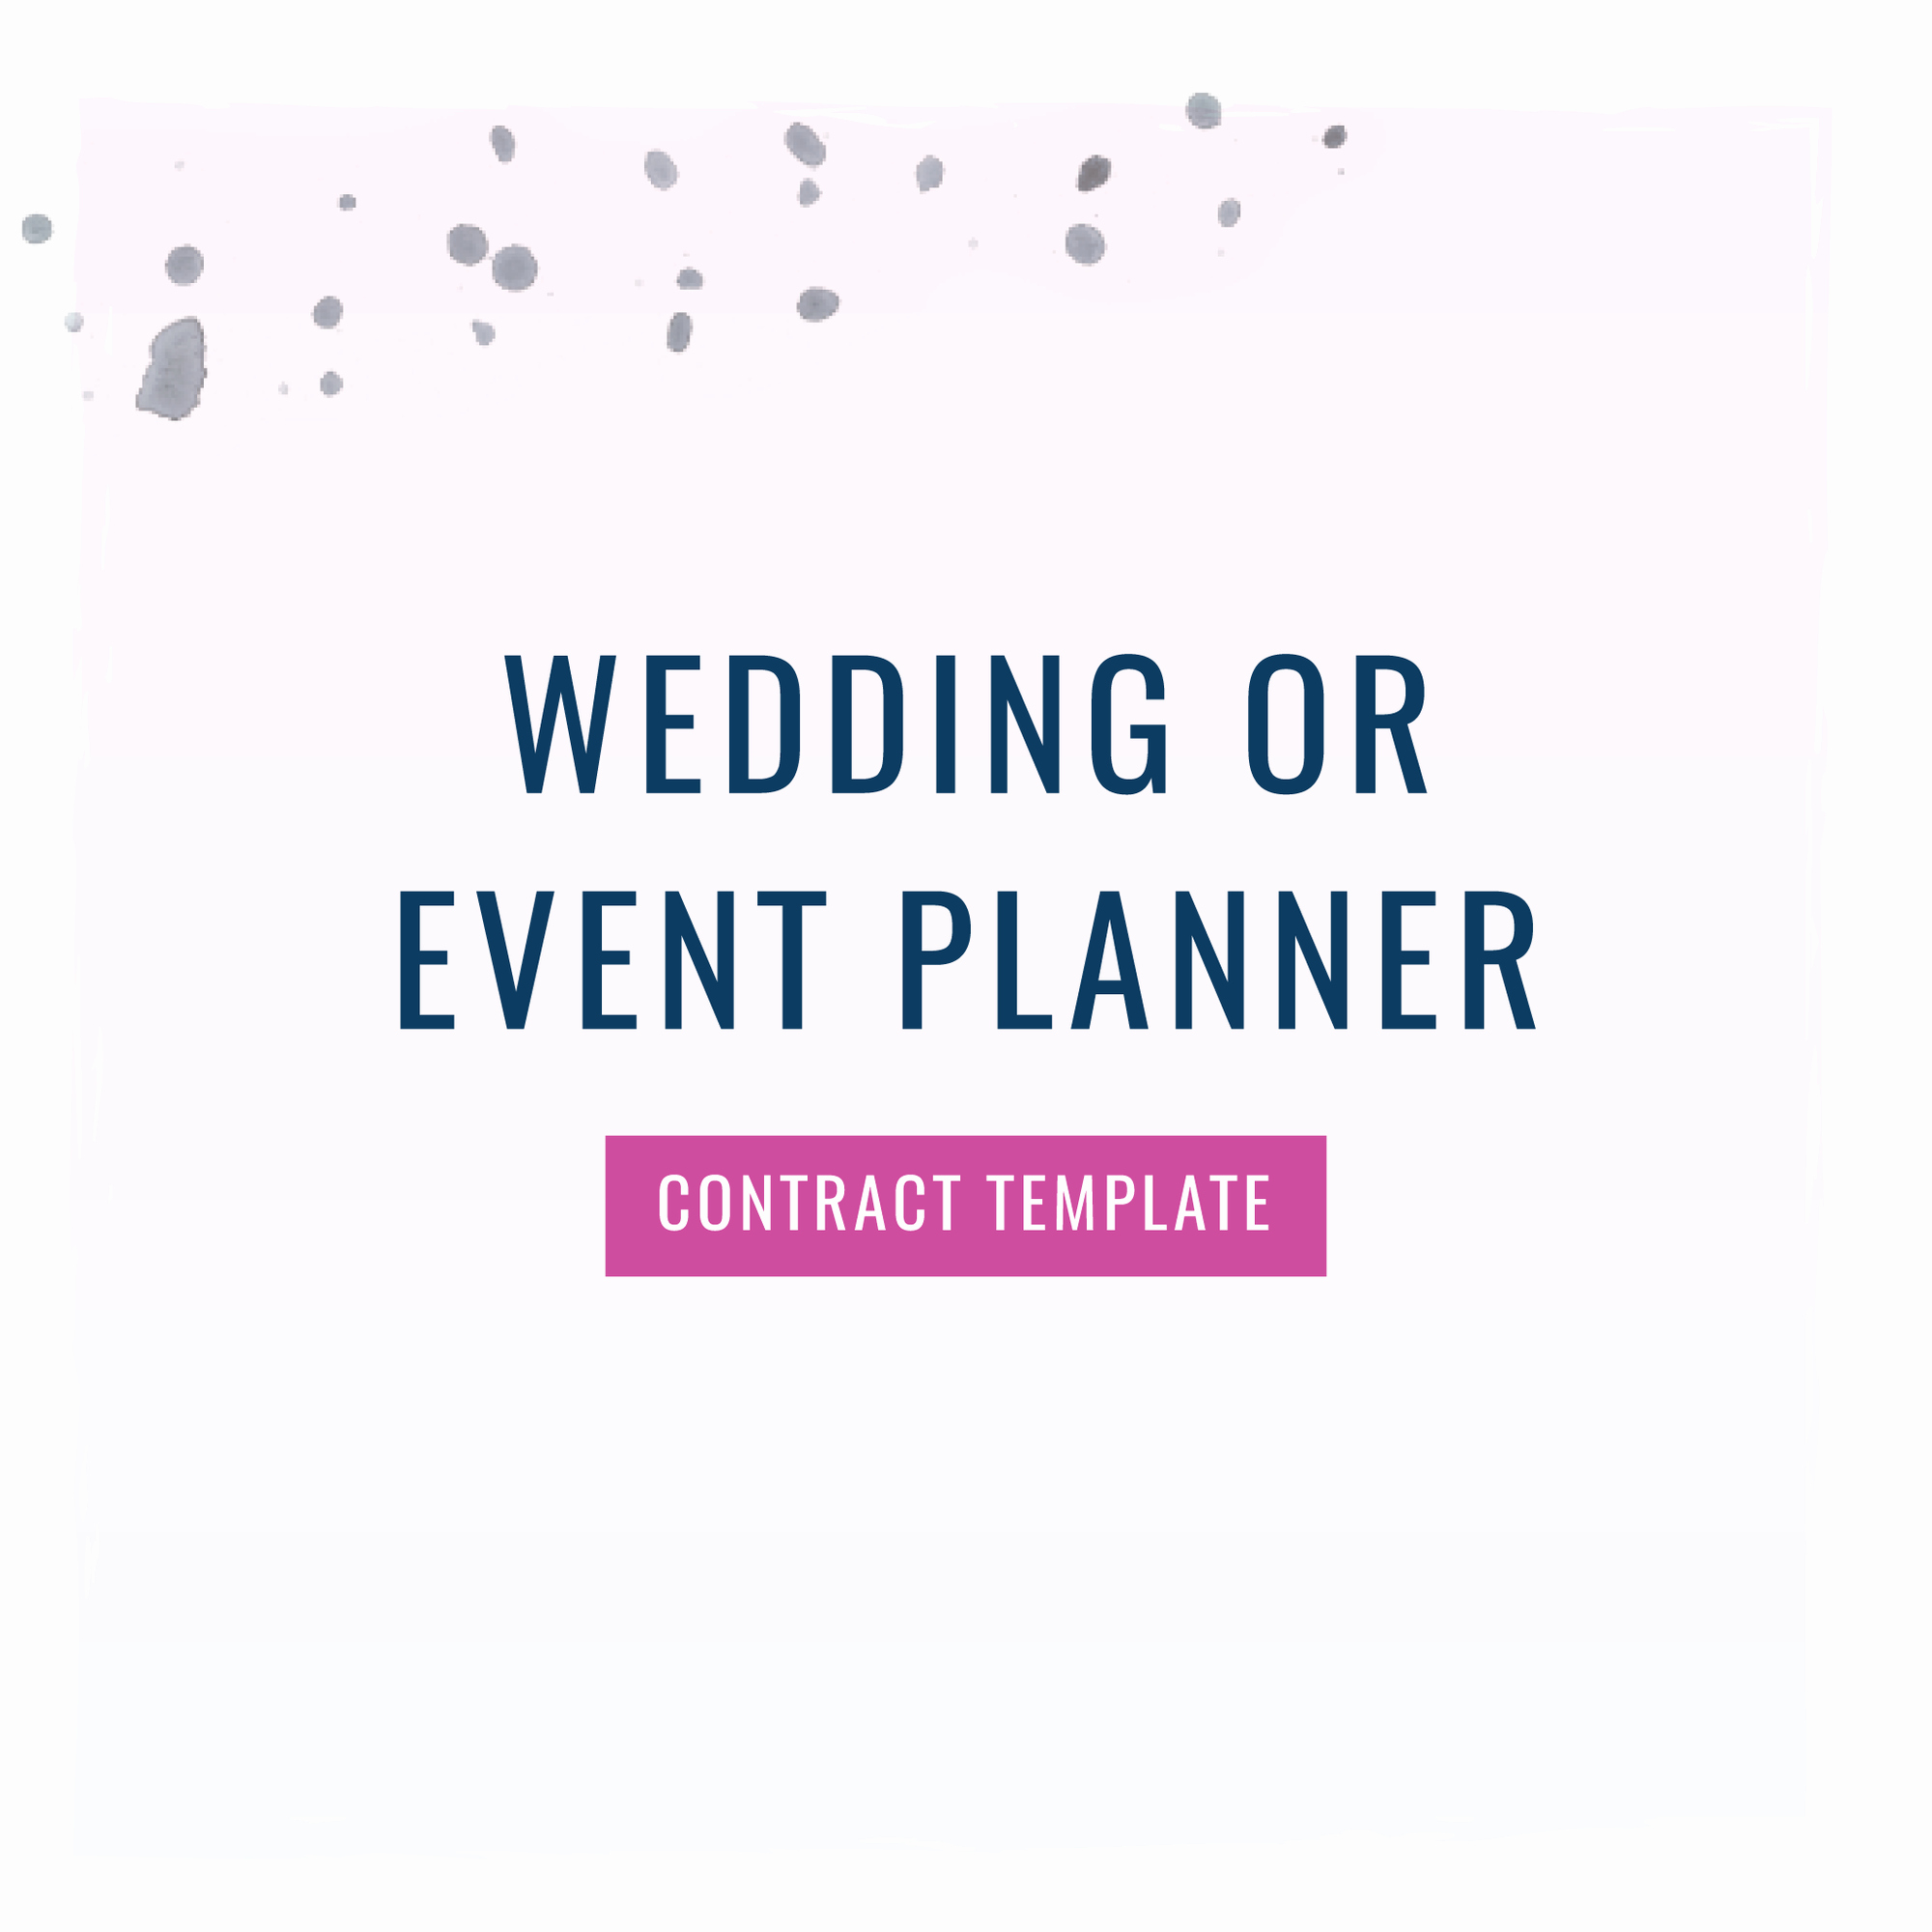 Wedding Planners Contract Template Inspirational Wedding or event Planner Contract Template the Contract